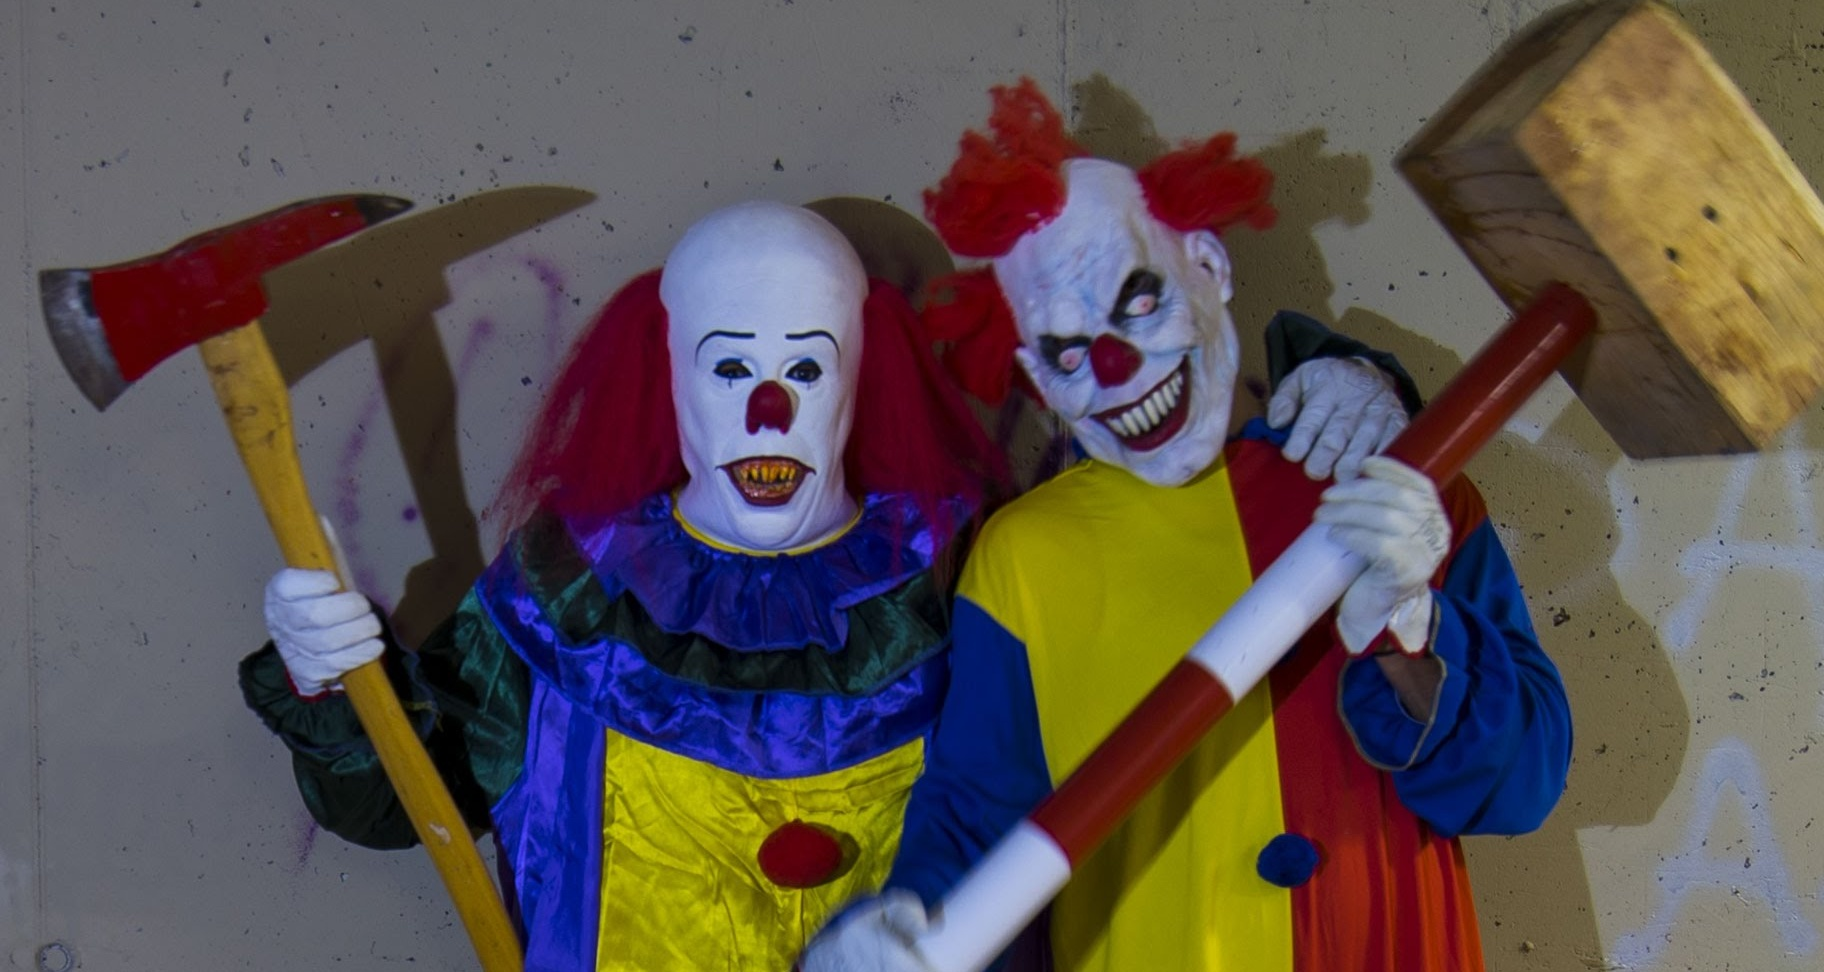 pictures of clowns